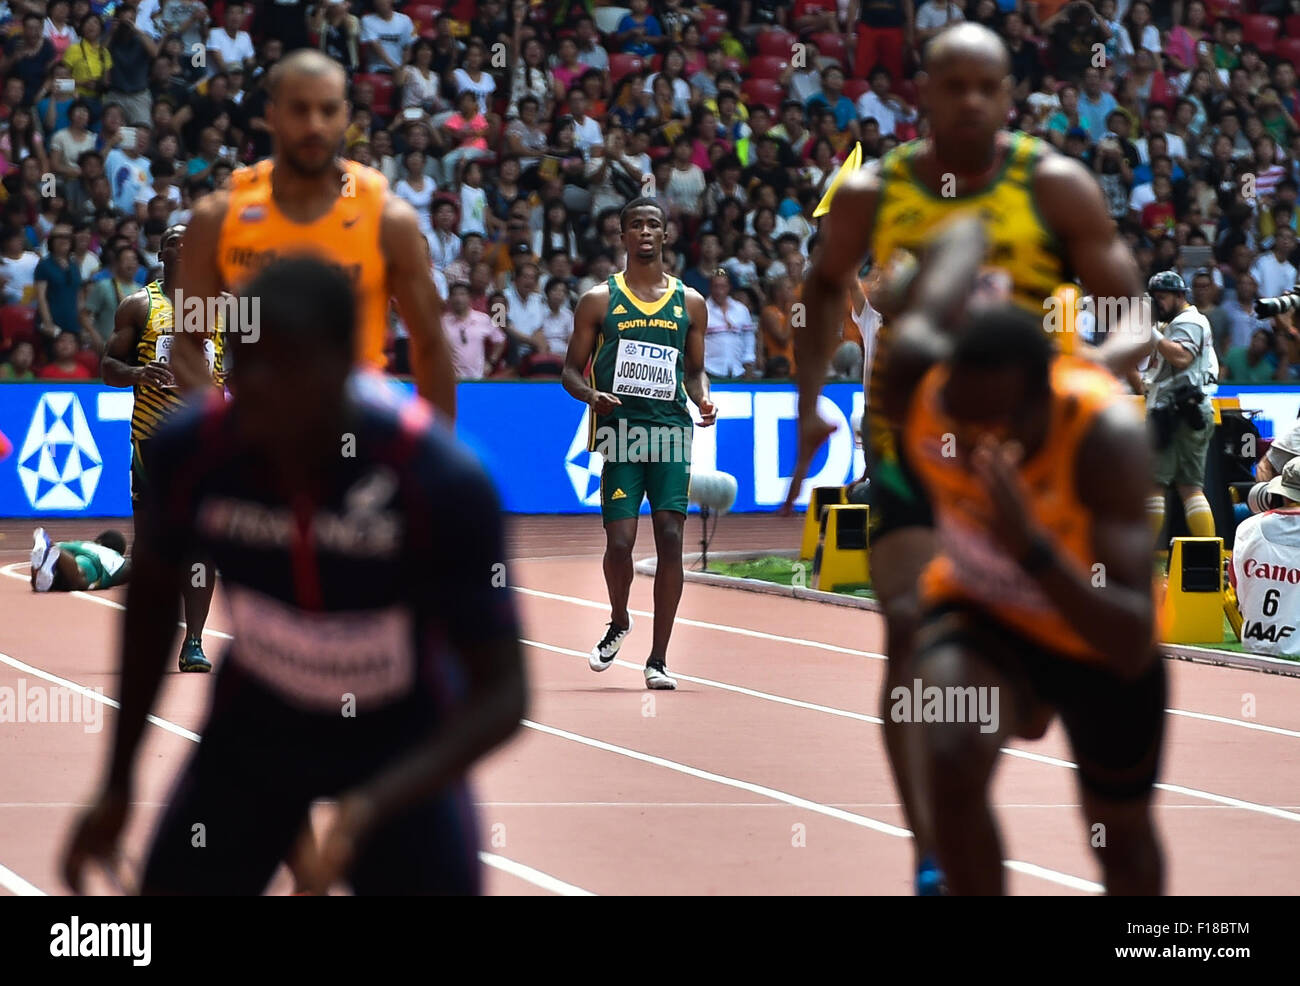 Images from the 2015 IAAF World Championships in Beijing, China - Stock Image